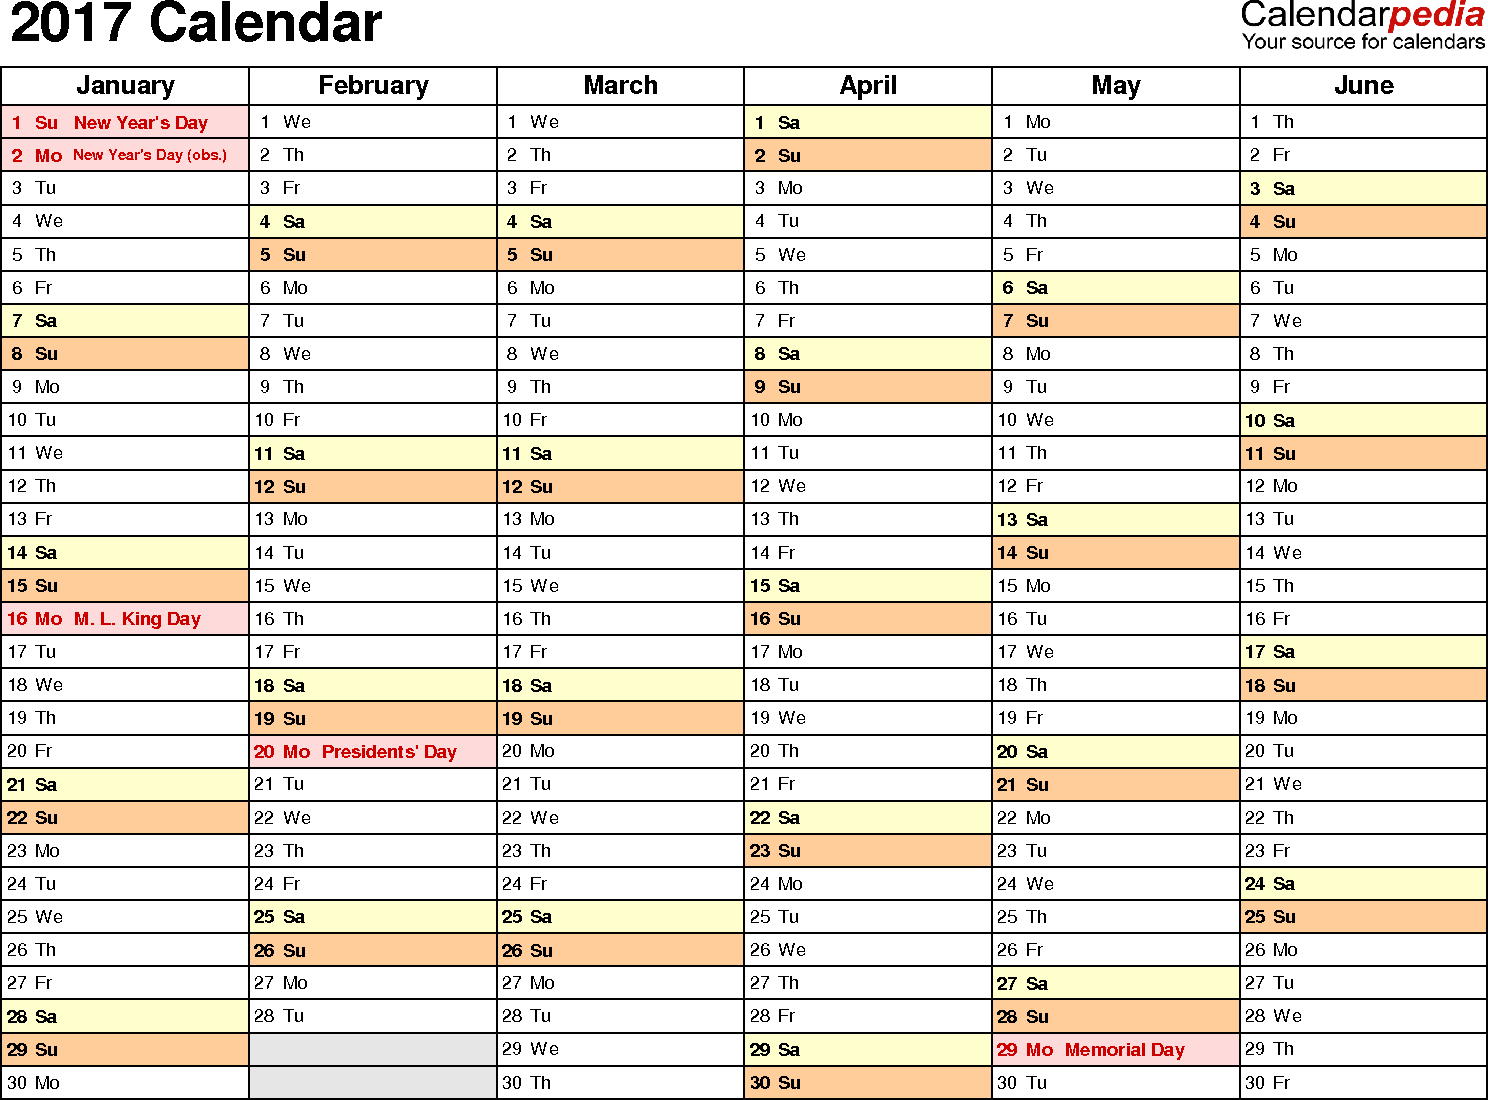 Ediblewildsus  Fascinating  Calendar  Download  Free Printable Excel Templates Xls With Marvelous Template   Calendar For Excel Months Horizontally  Pages Landscape Orientation With Endearing Secondary Axis Excel  Also Identifying Duplicates In Excel In Addition How To Make Line Graph In Excel And Exp Function Excel As Well As Gcf Learning Excel Additionally Excel Institute From Calendarpediacom With Ediblewildsus  Marvelous  Calendar  Download  Free Printable Excel Templates Xls With Endearing Template   Calendar For Excel Months Horizontally  Pages Landscape Orientation And Fascinating Secondary Axis Excel  Also Identifying Duplicates In Excel In Addition How To Make Line Graph In Excel From Calendarpediacom